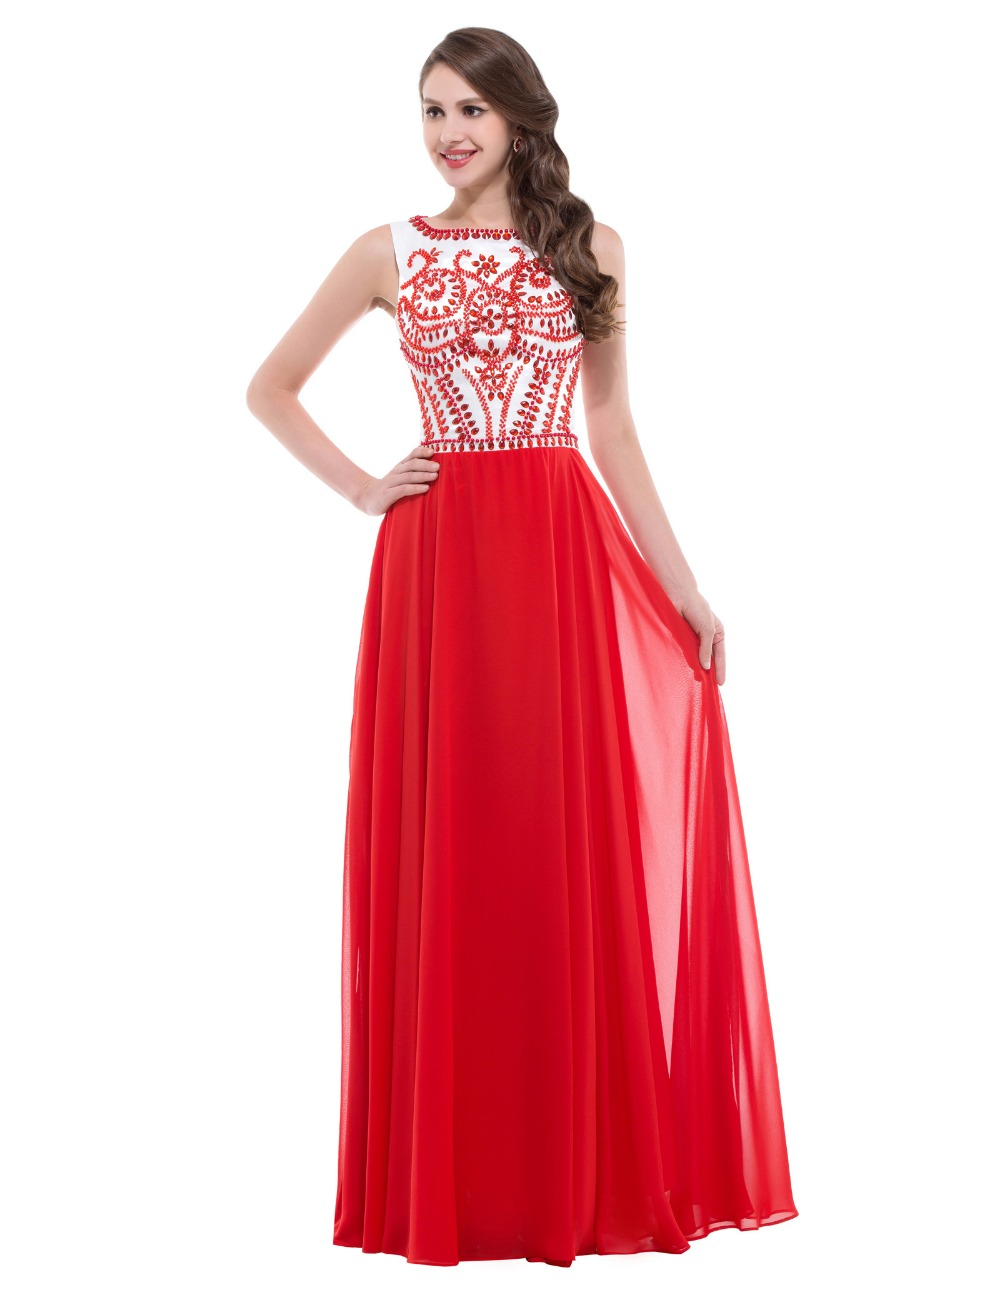 Dress beaded a line evening dresses long formal party clothing women